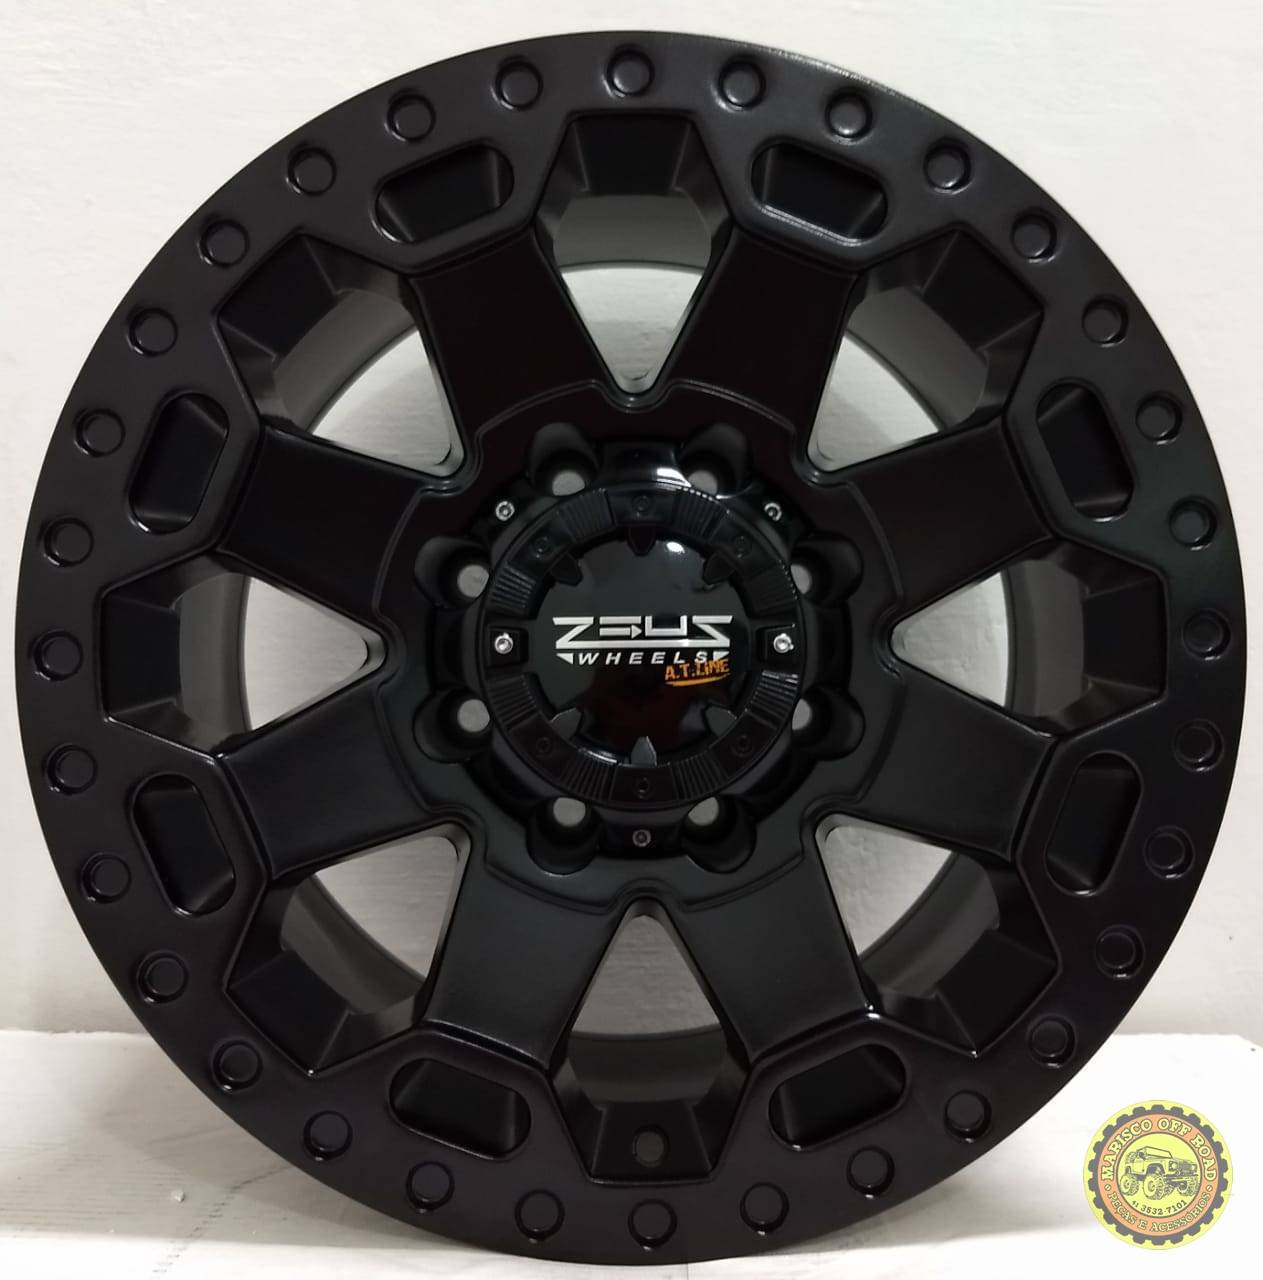 Roda 17x9 ZEUS, furação 8x170, off set 0 - F250/F350/MARRUÁ - Marisco Off Road